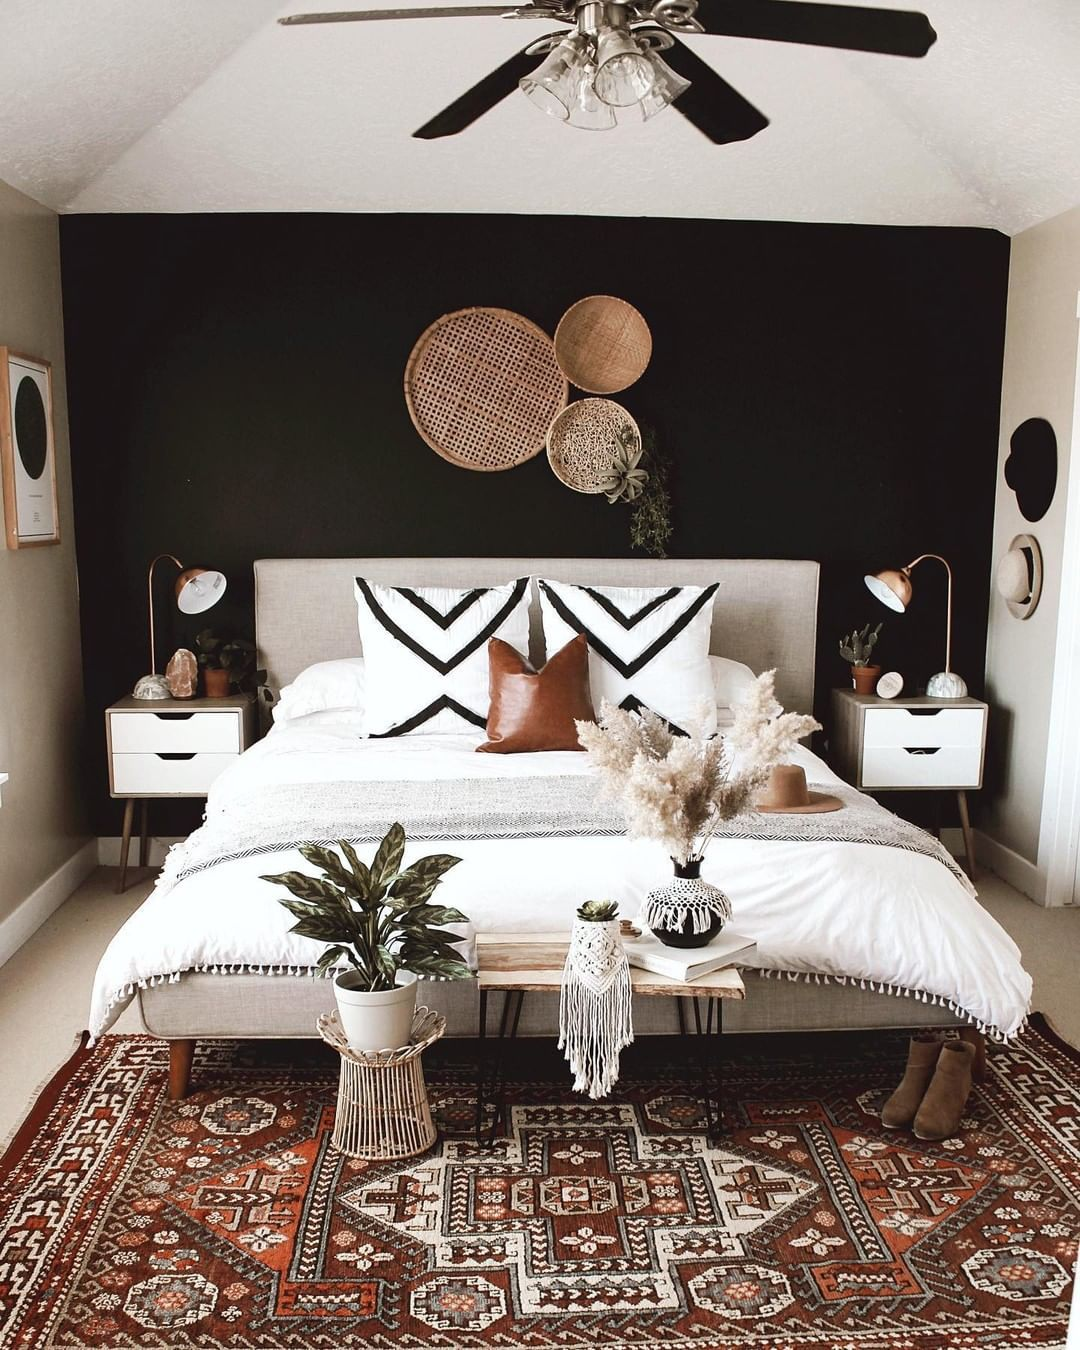 "Hunker on Instagram: ""What's your favorite part of this space? We can't choose 🤩 (📷 submitted by @bitsofbohome) Link in bio for more home decor inspo."""